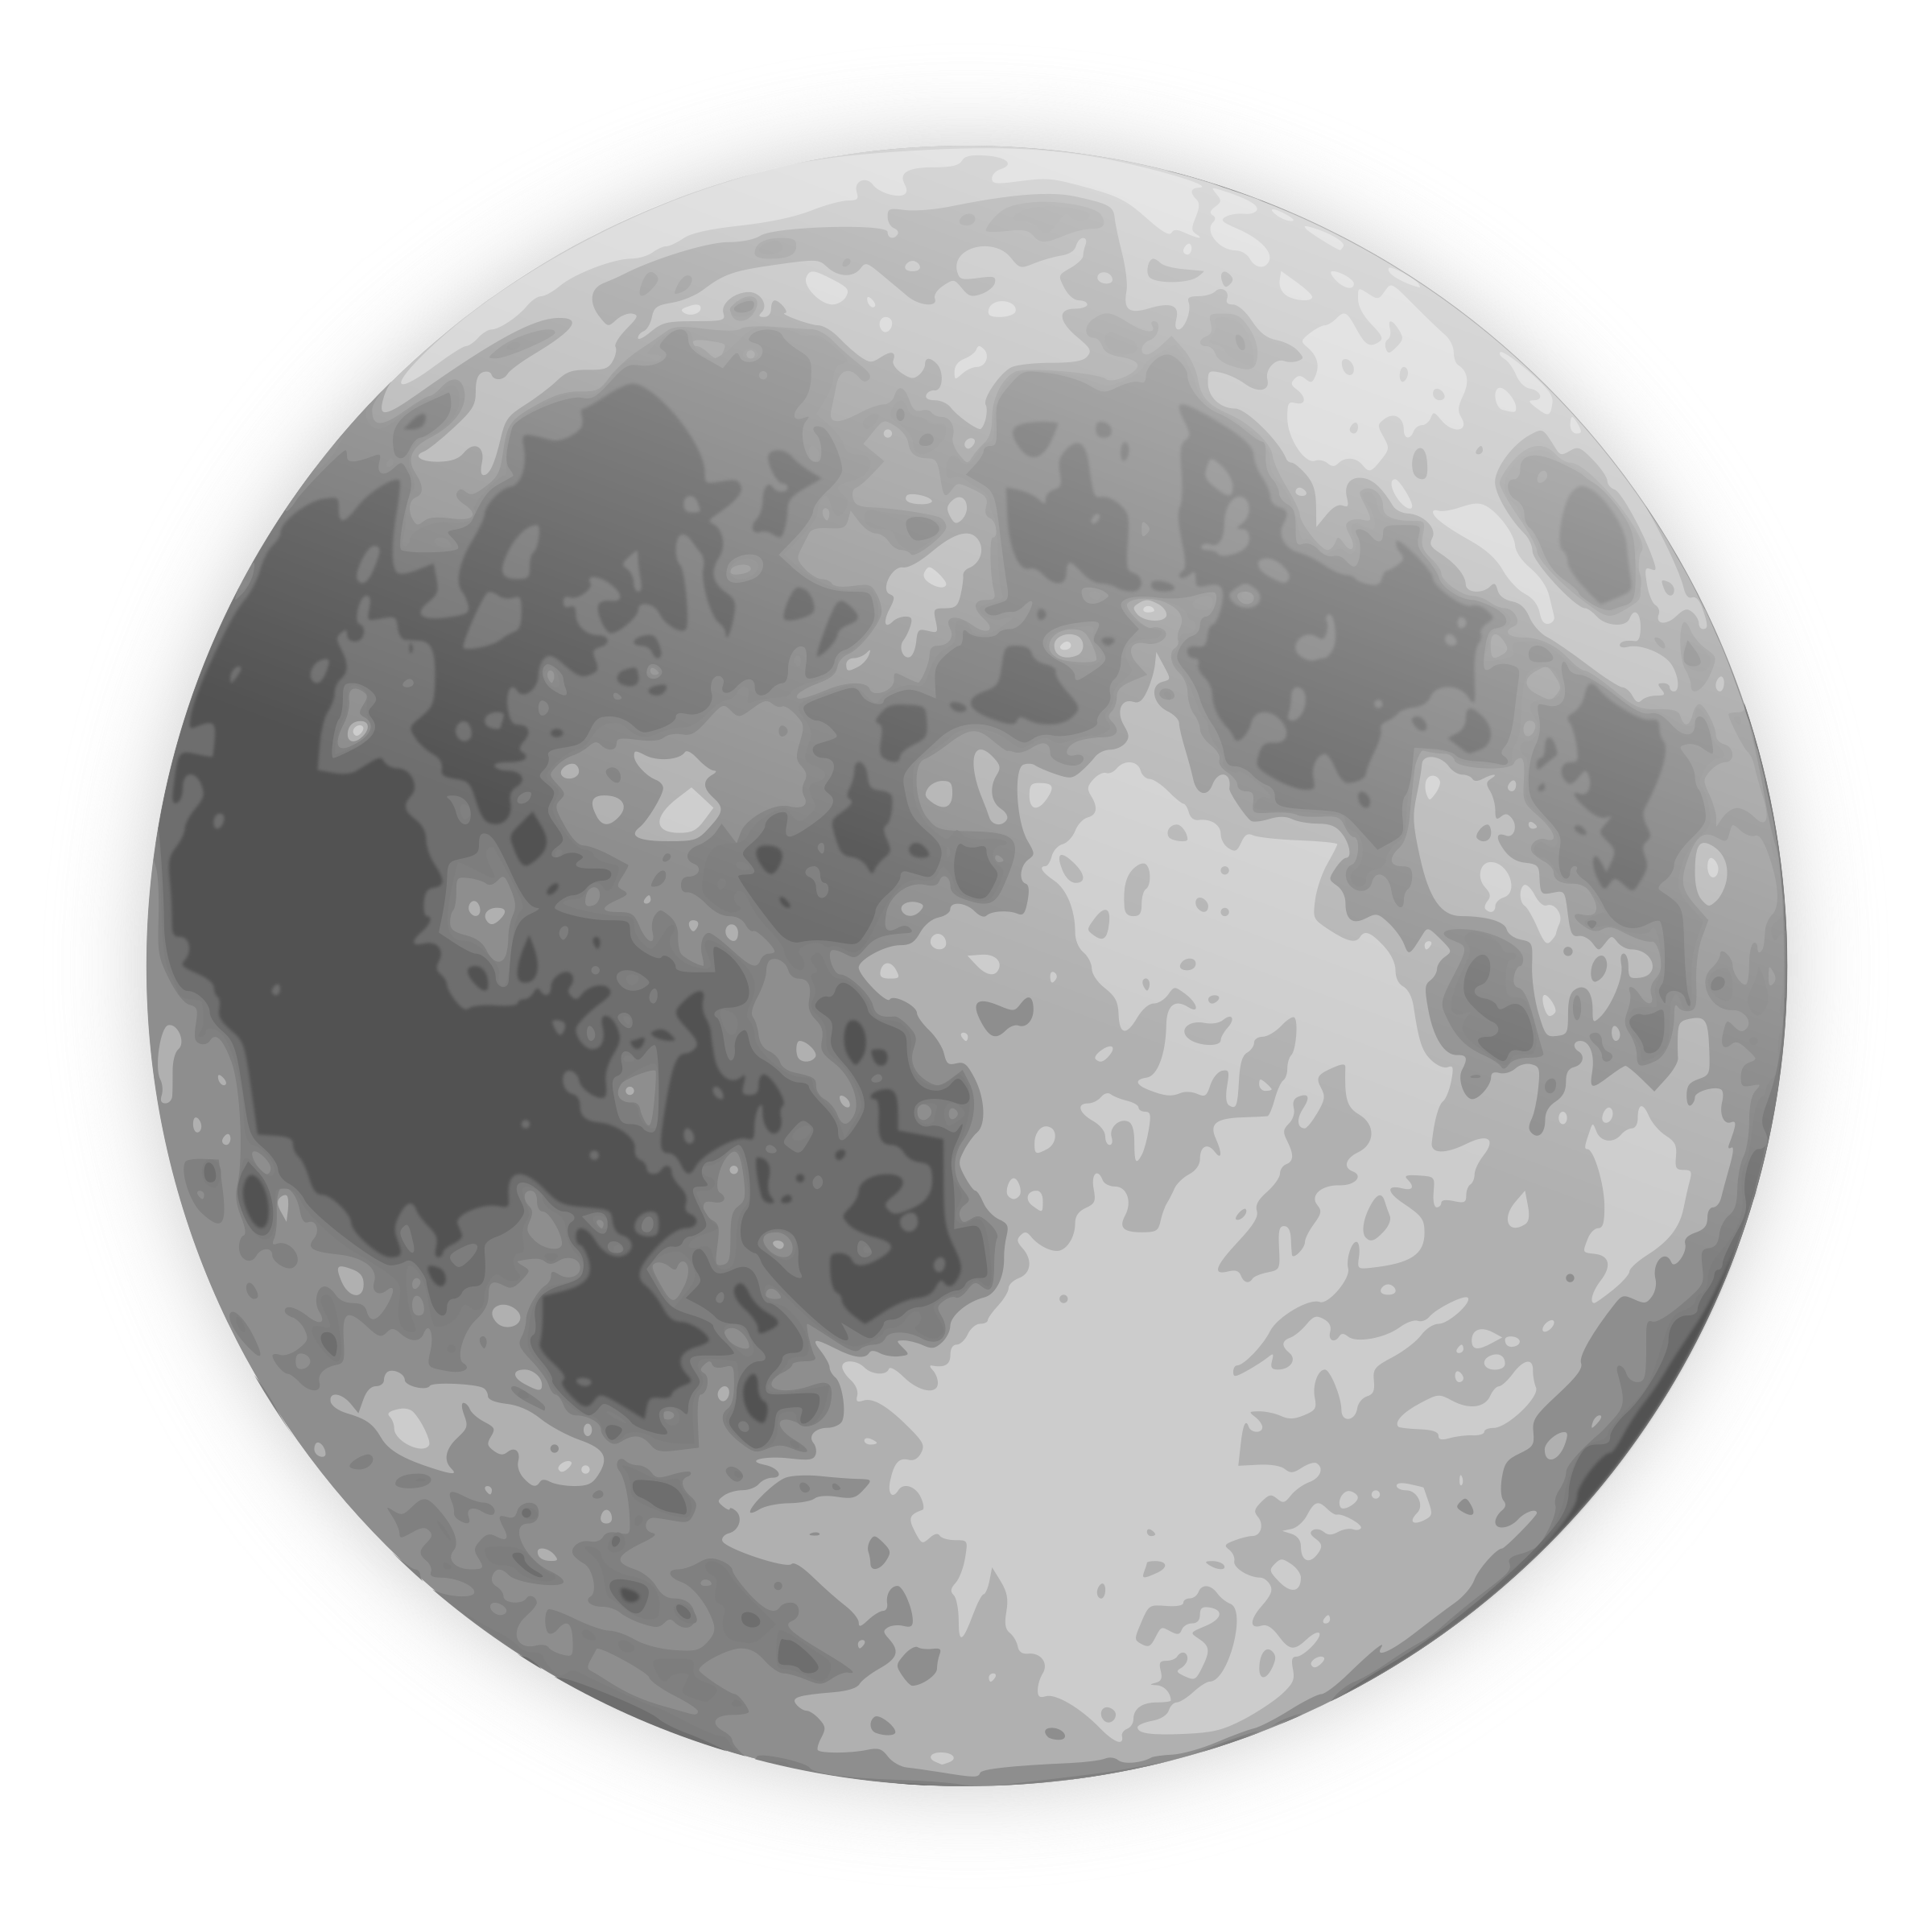 Moon png transparent. Images free download